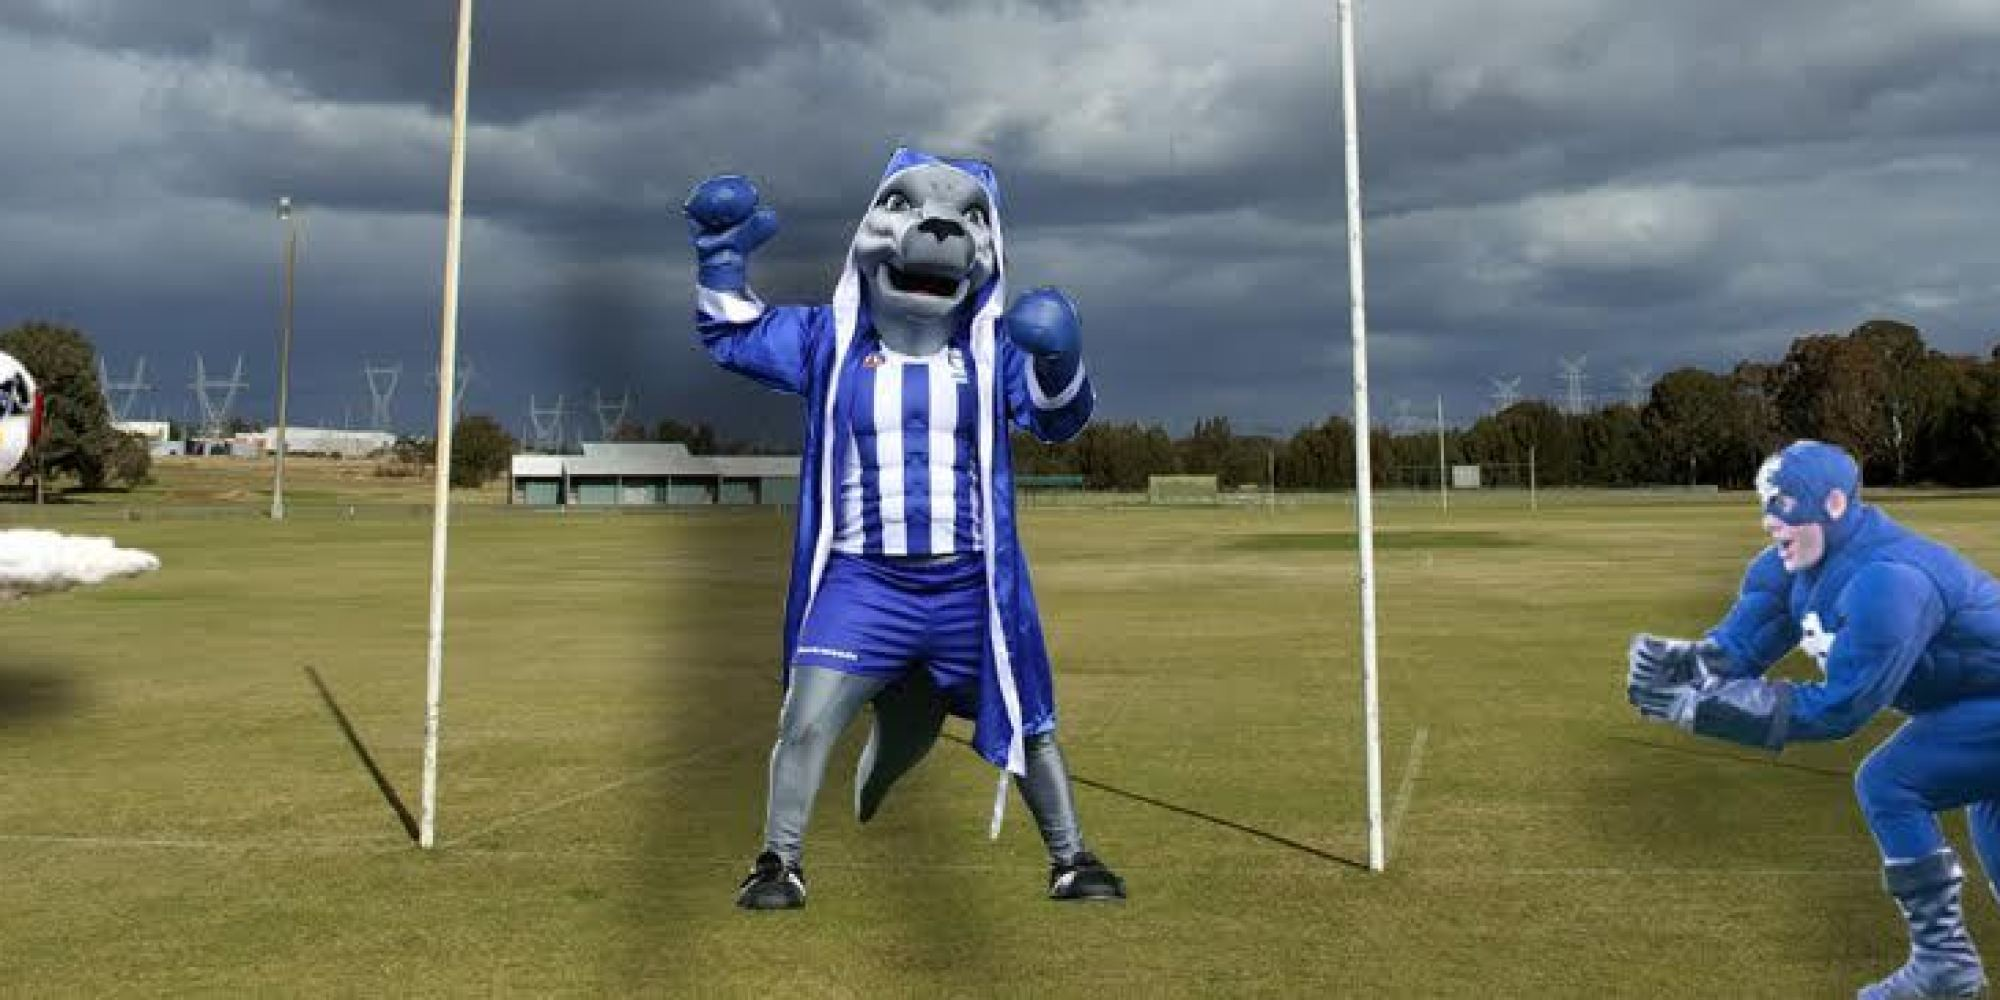 Afl Season 2016 We Rate The Club Mascots By Toughness